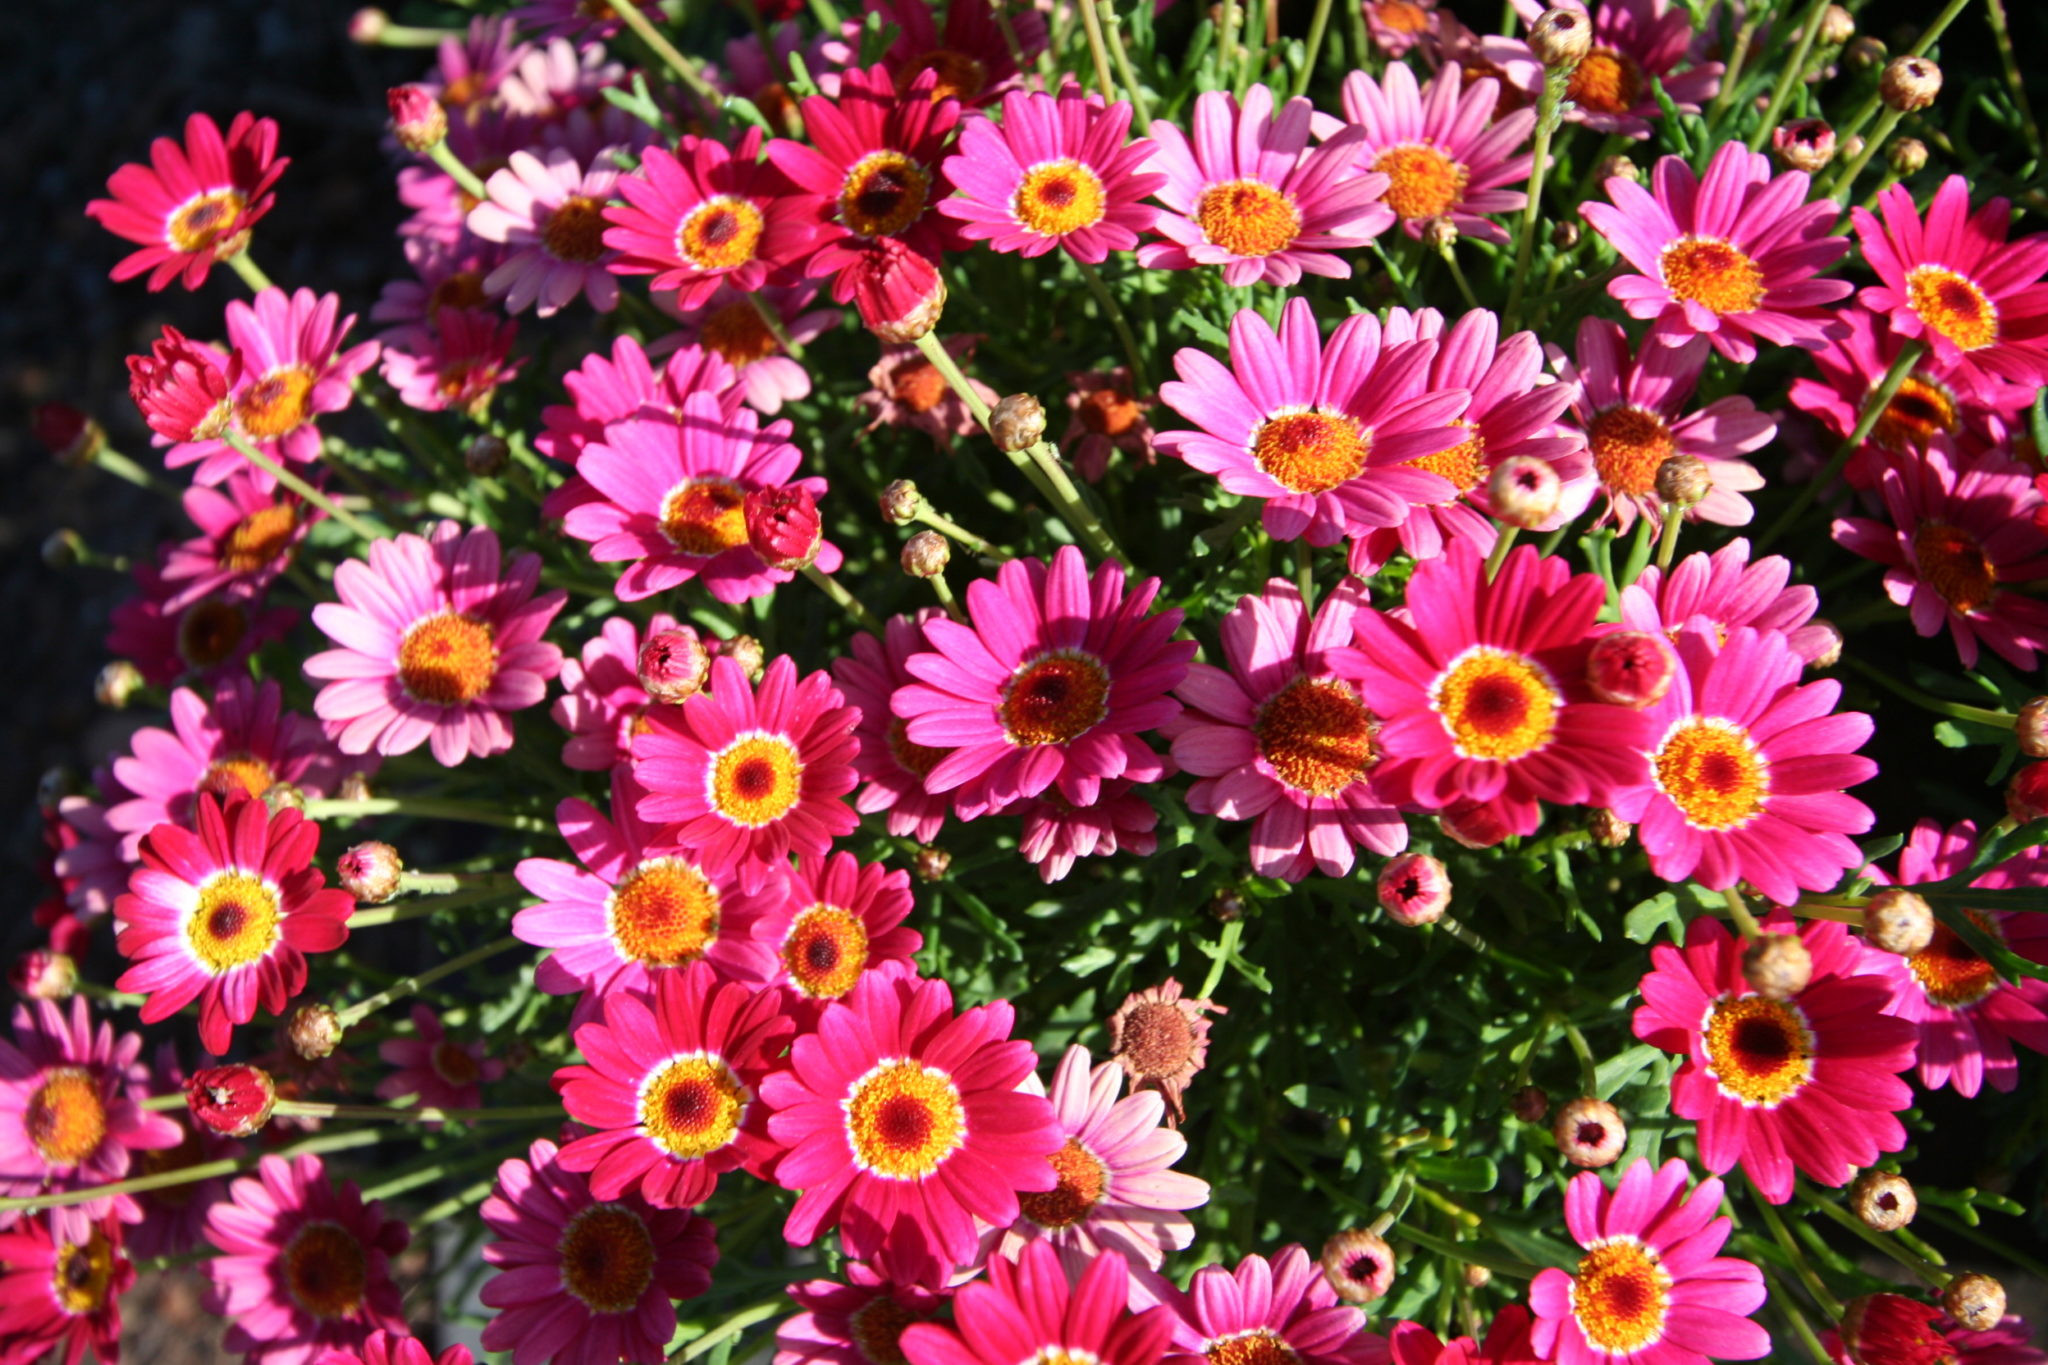 pansy flower ring vase of plants frequently asked plant related questions for argyranthemum angelic